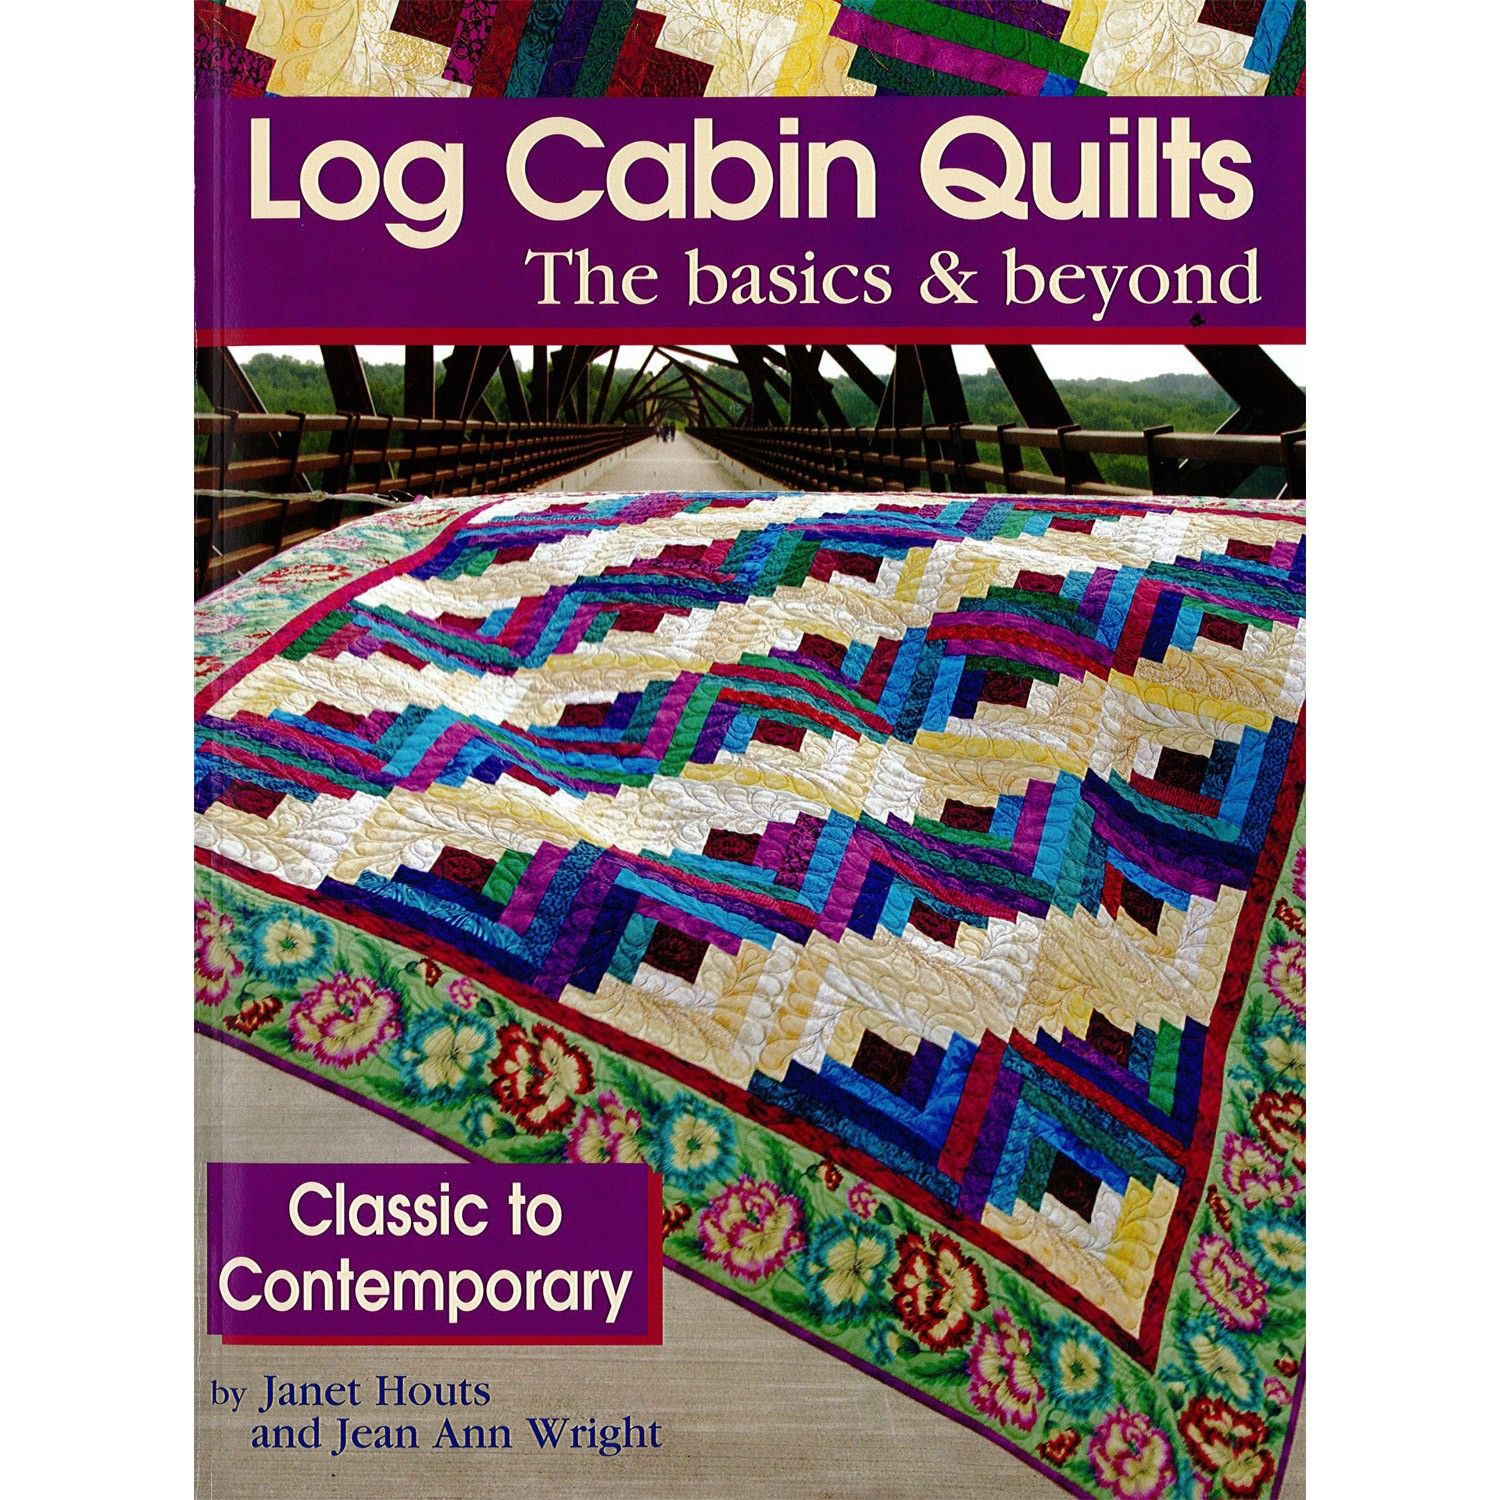 Learn Traditional Log Cabin Block Construction, Including Courthouse Steps  And Half Log Cabin, And How To Design Your Own Log Cabin Quilts.